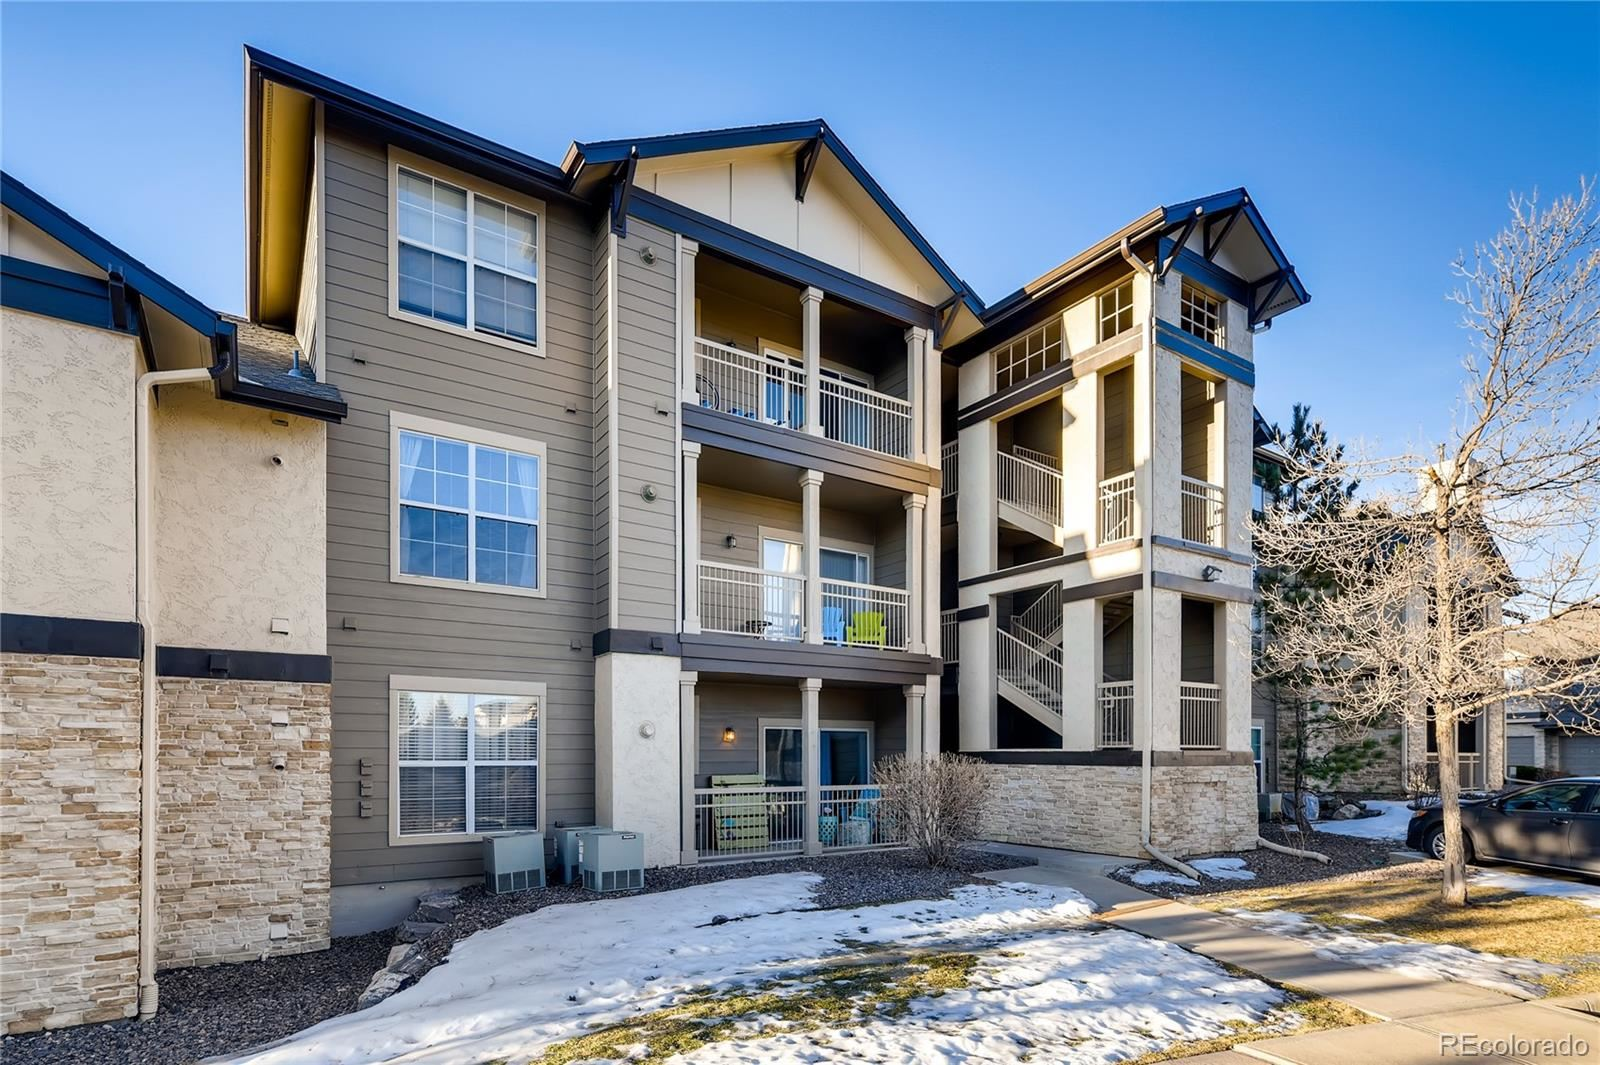 7499 S Quail Circle  1016 #1016, Littleton, CO 80127 - #: 7491551